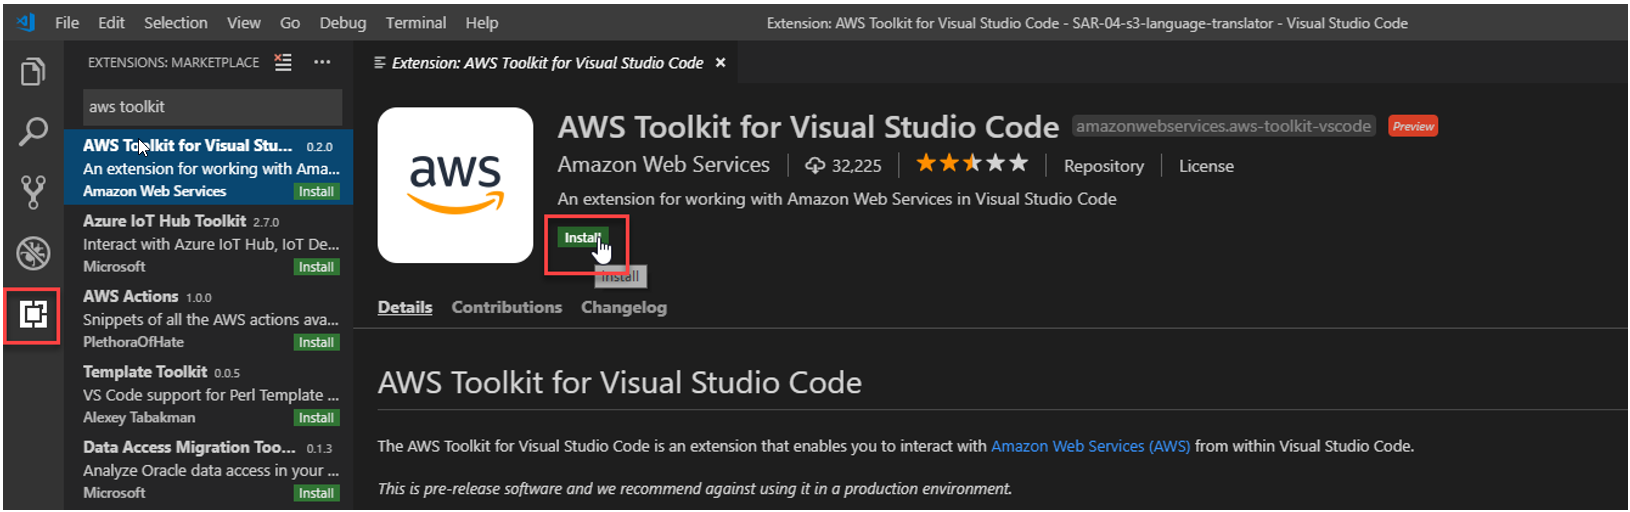 Announcing AWS Toolkit for Visual Studio Code | AWS